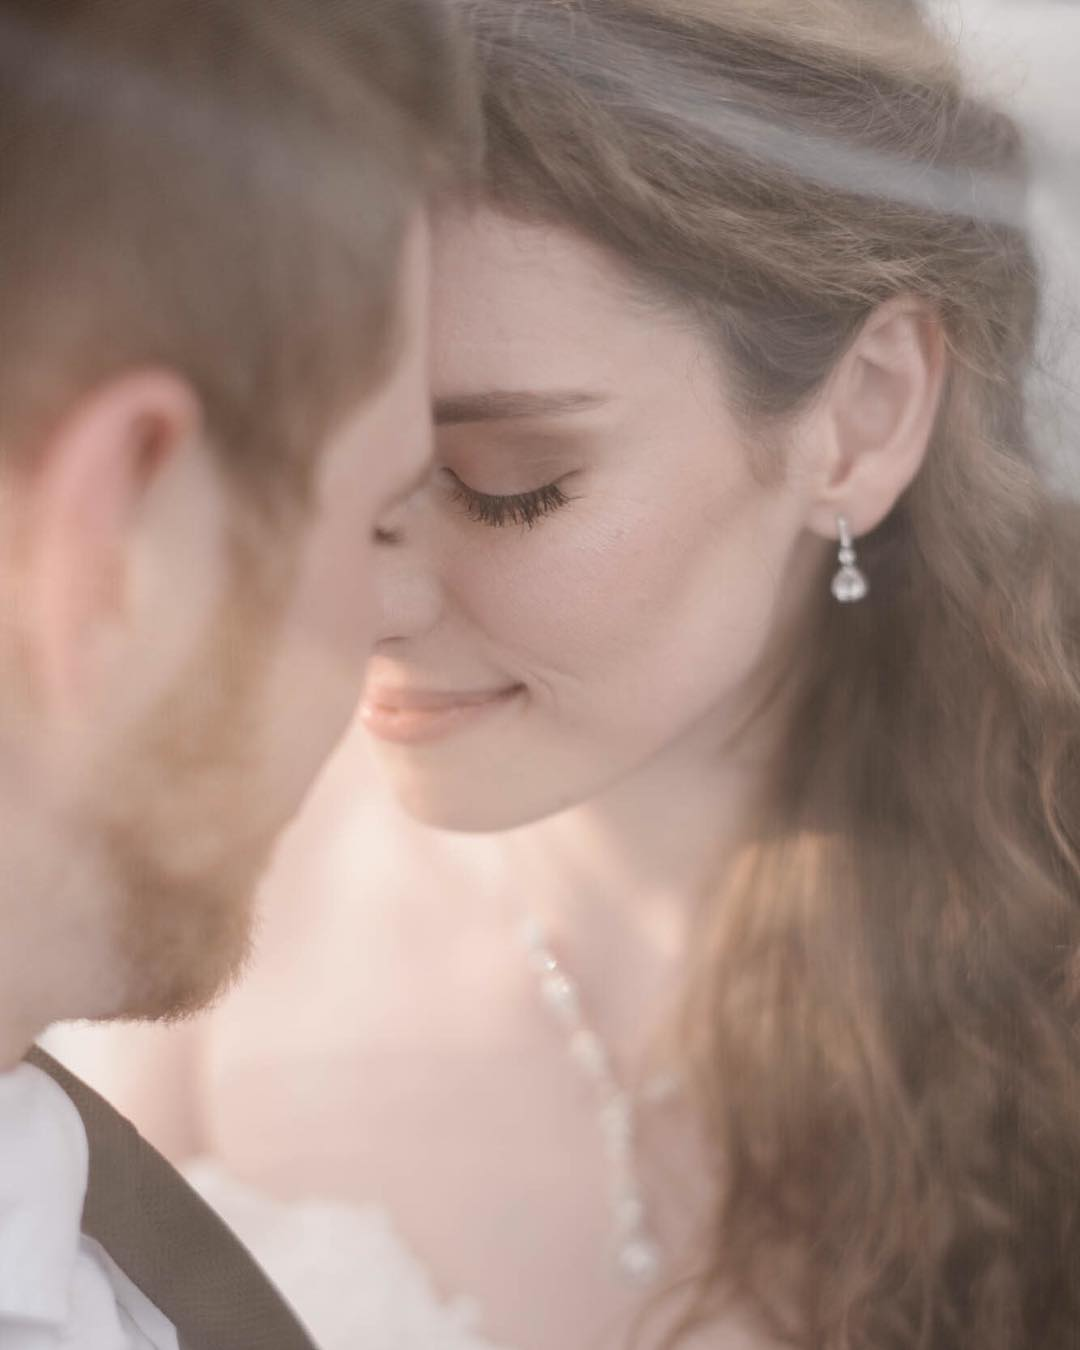 A close up portrait of a bride and groom smiling and leaning their foreheads on each other